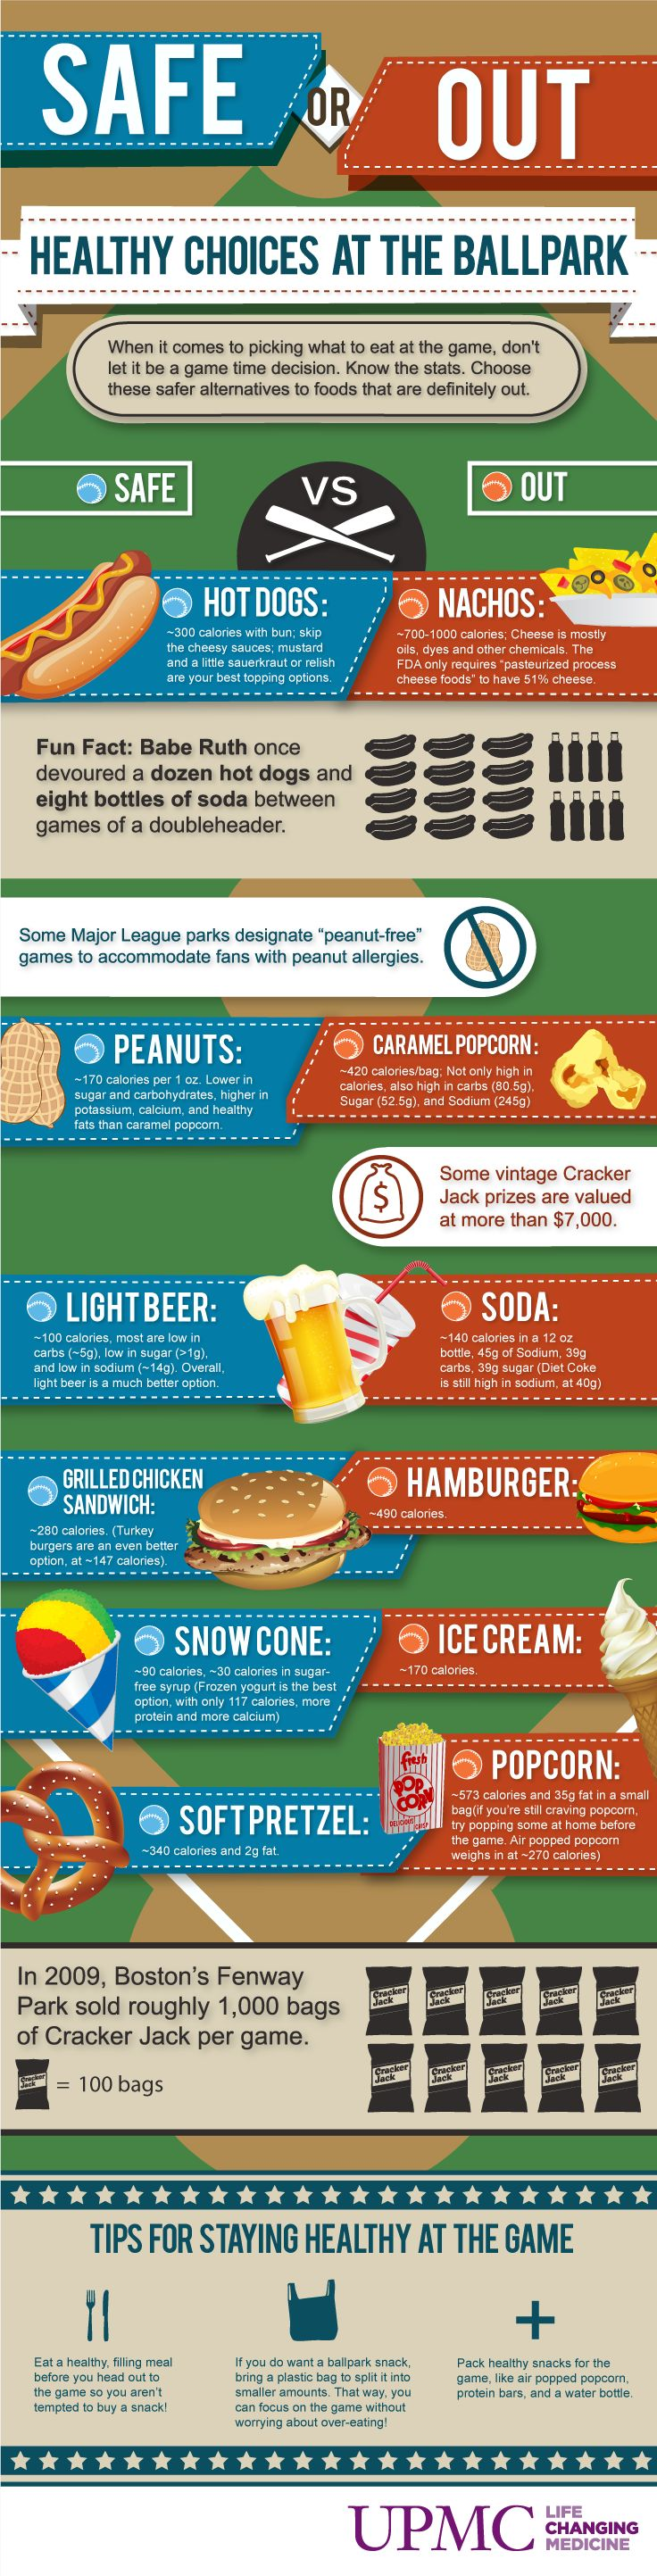 Next time you're at a baseball game, don't let stadium food knock your diet off track. Discover which foods are safe and which are out.